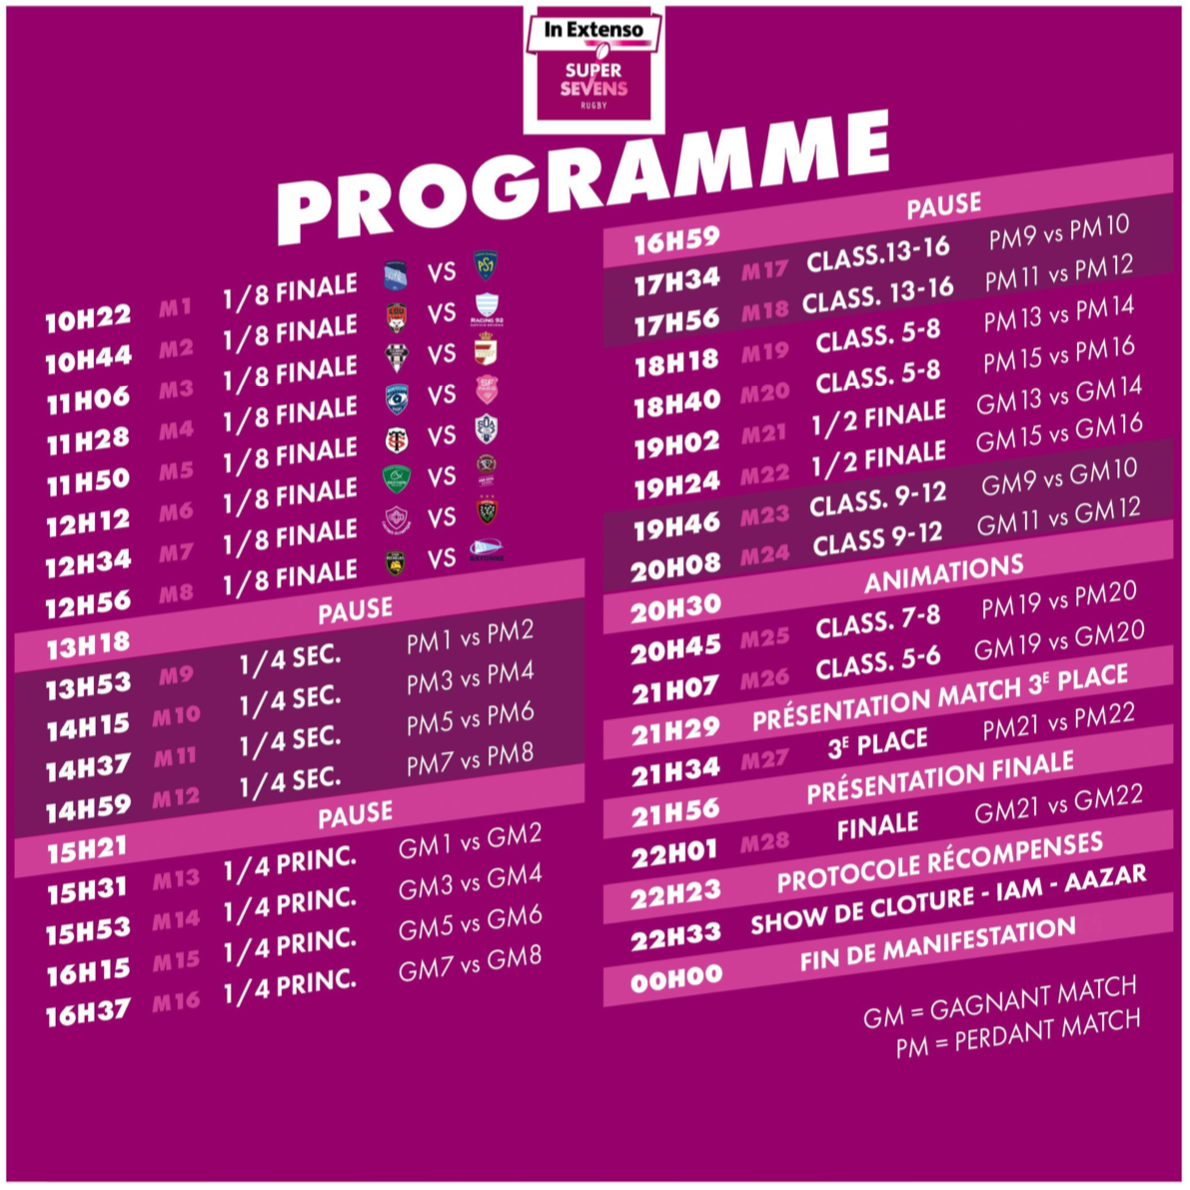 Programmation In Extenso Supersevens 2020 - rugby a sept - 7s